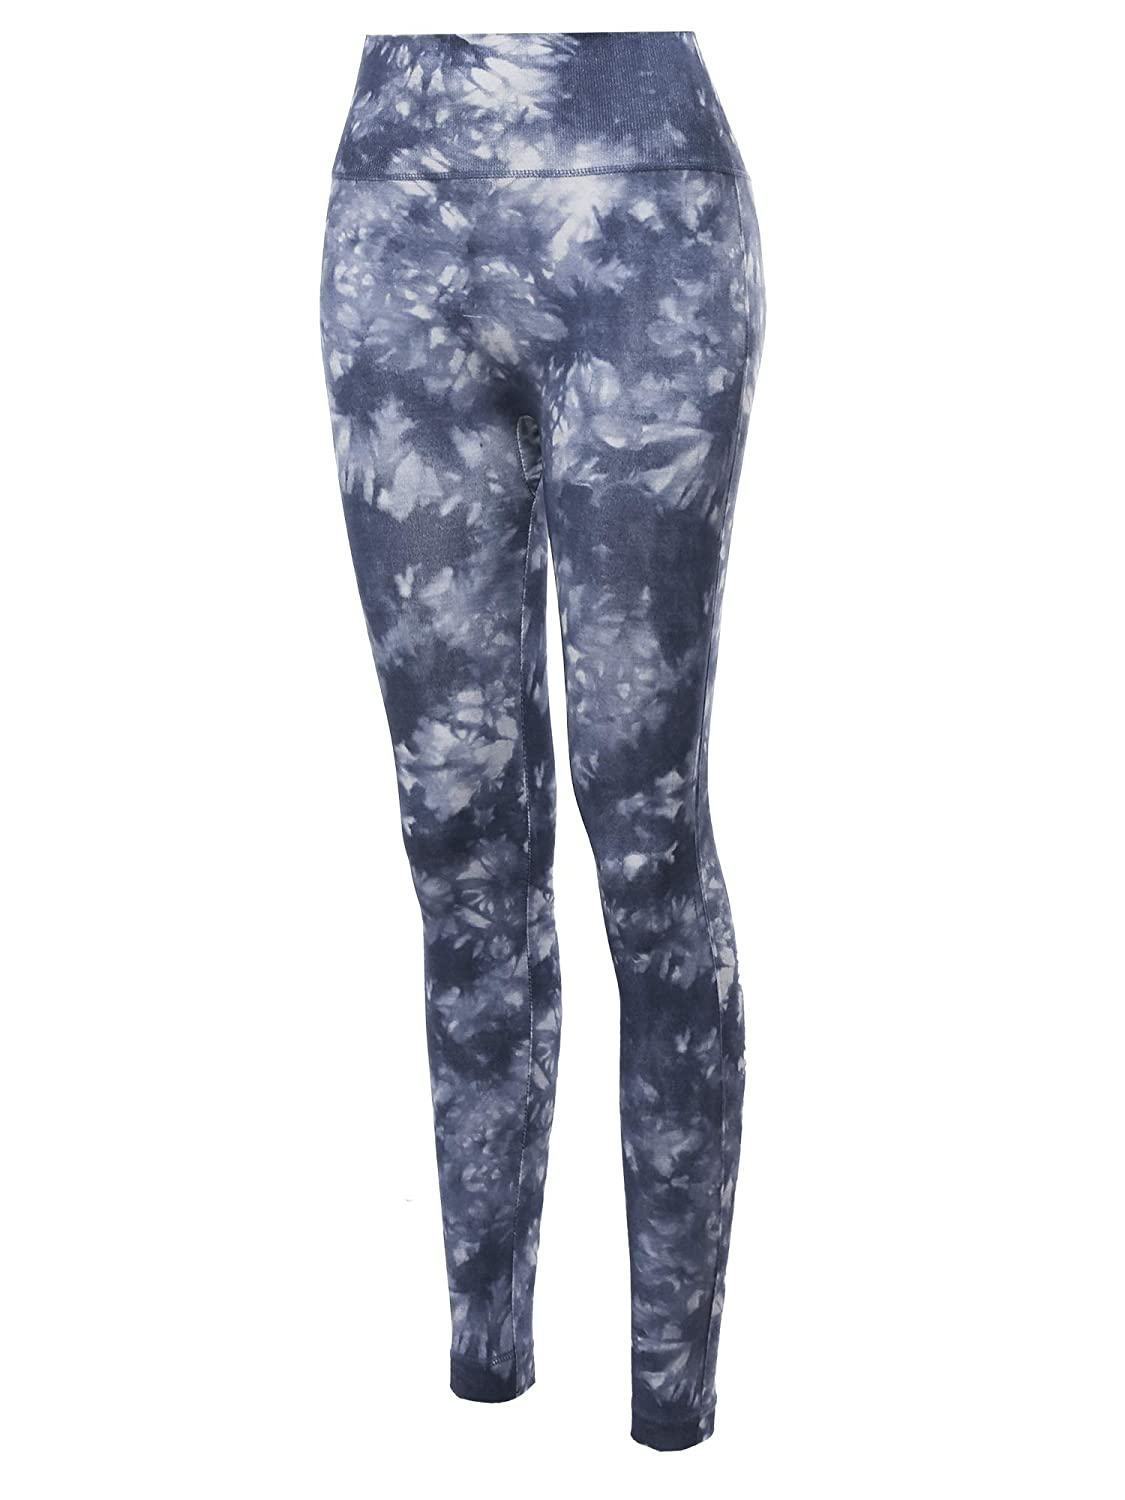 Made by Emma Womens High Waist Tummy Control Tie Dye Sublimation Leggings Yoga Pants